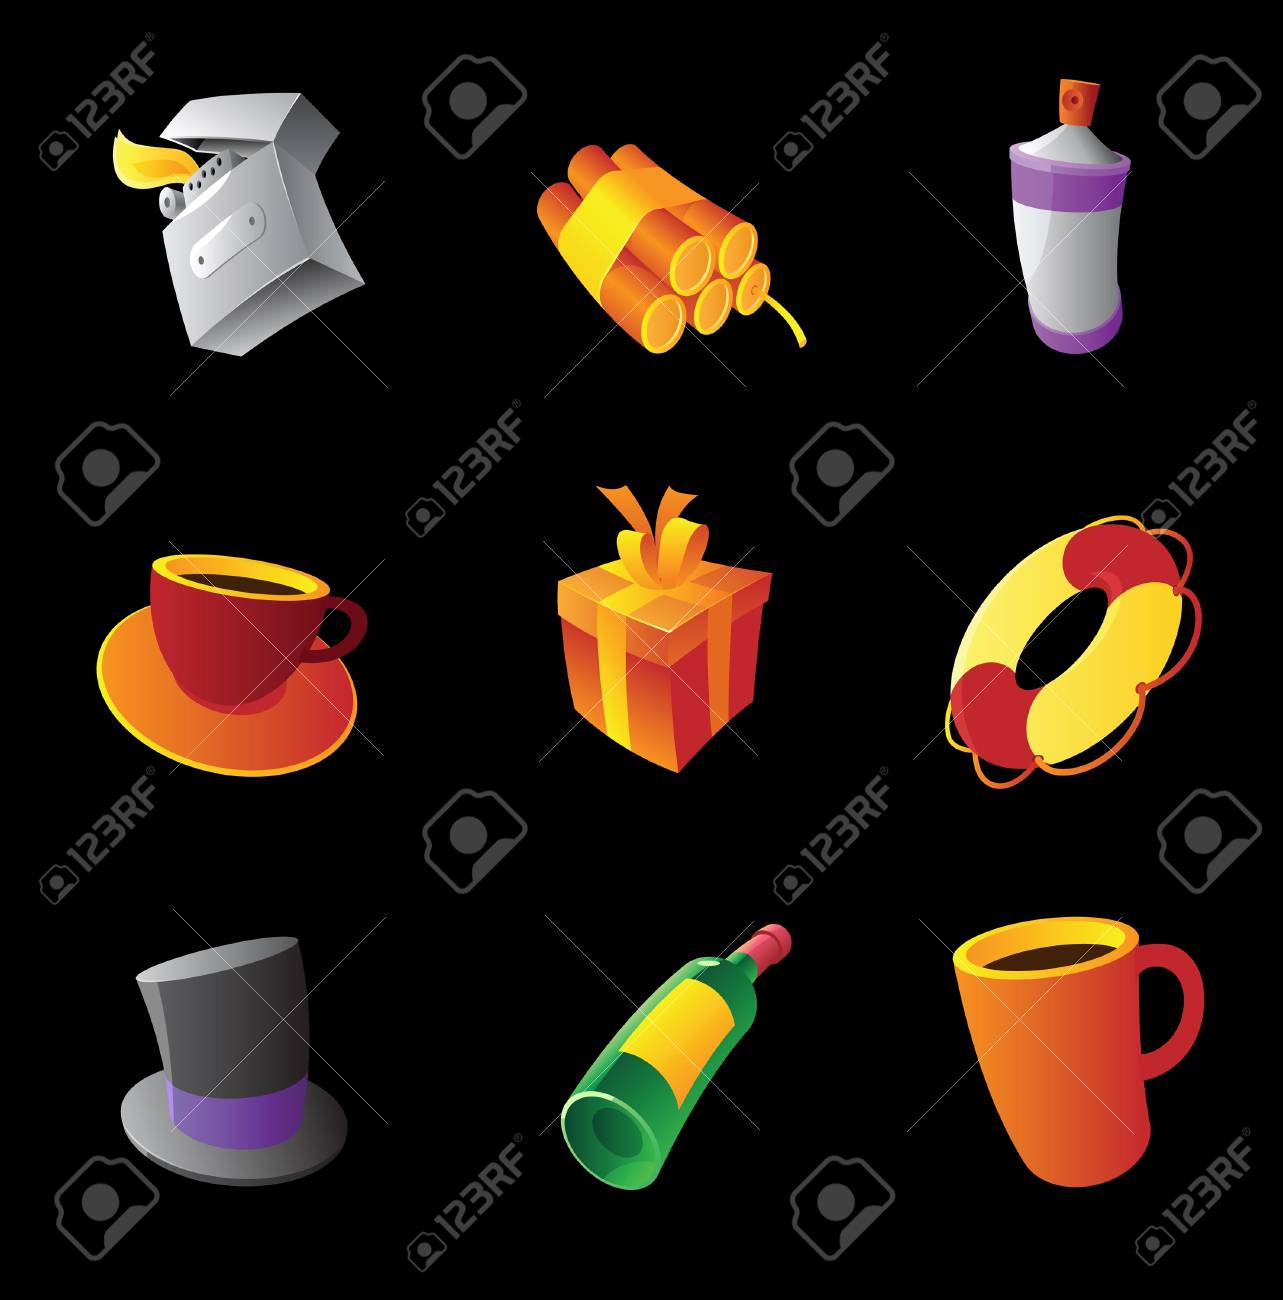 Miscellaneous icons on black background Stock Vector - 15800180